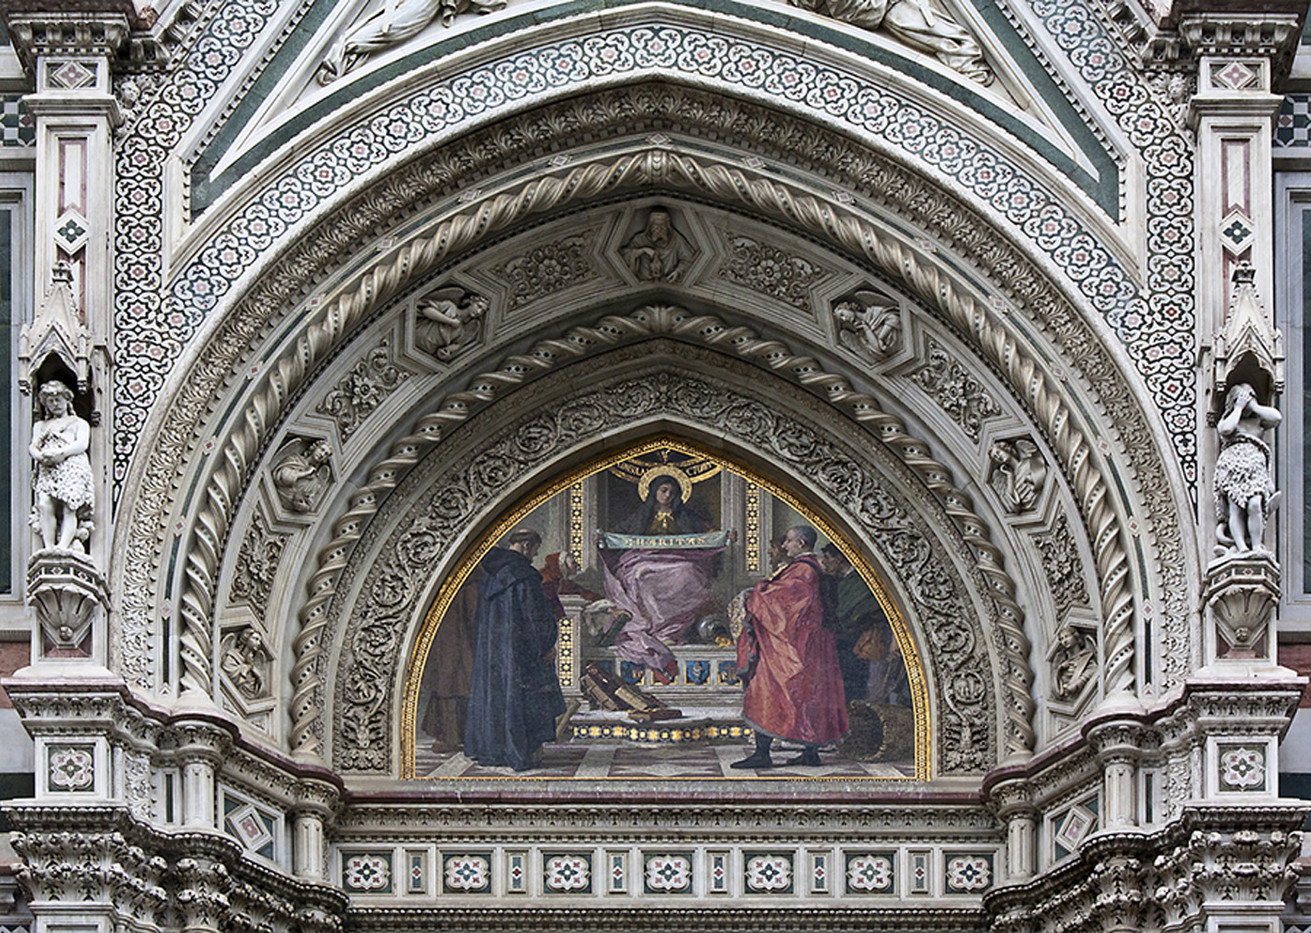 16 DETAIL OF FACADE OF FLORENCE CATHEDRAL BUILT IN THE 1870s WITH MOSAIC BY NICOLO BARABINO DEPICTING CITIZENS PAYING HOMAGE by Philip Smithies